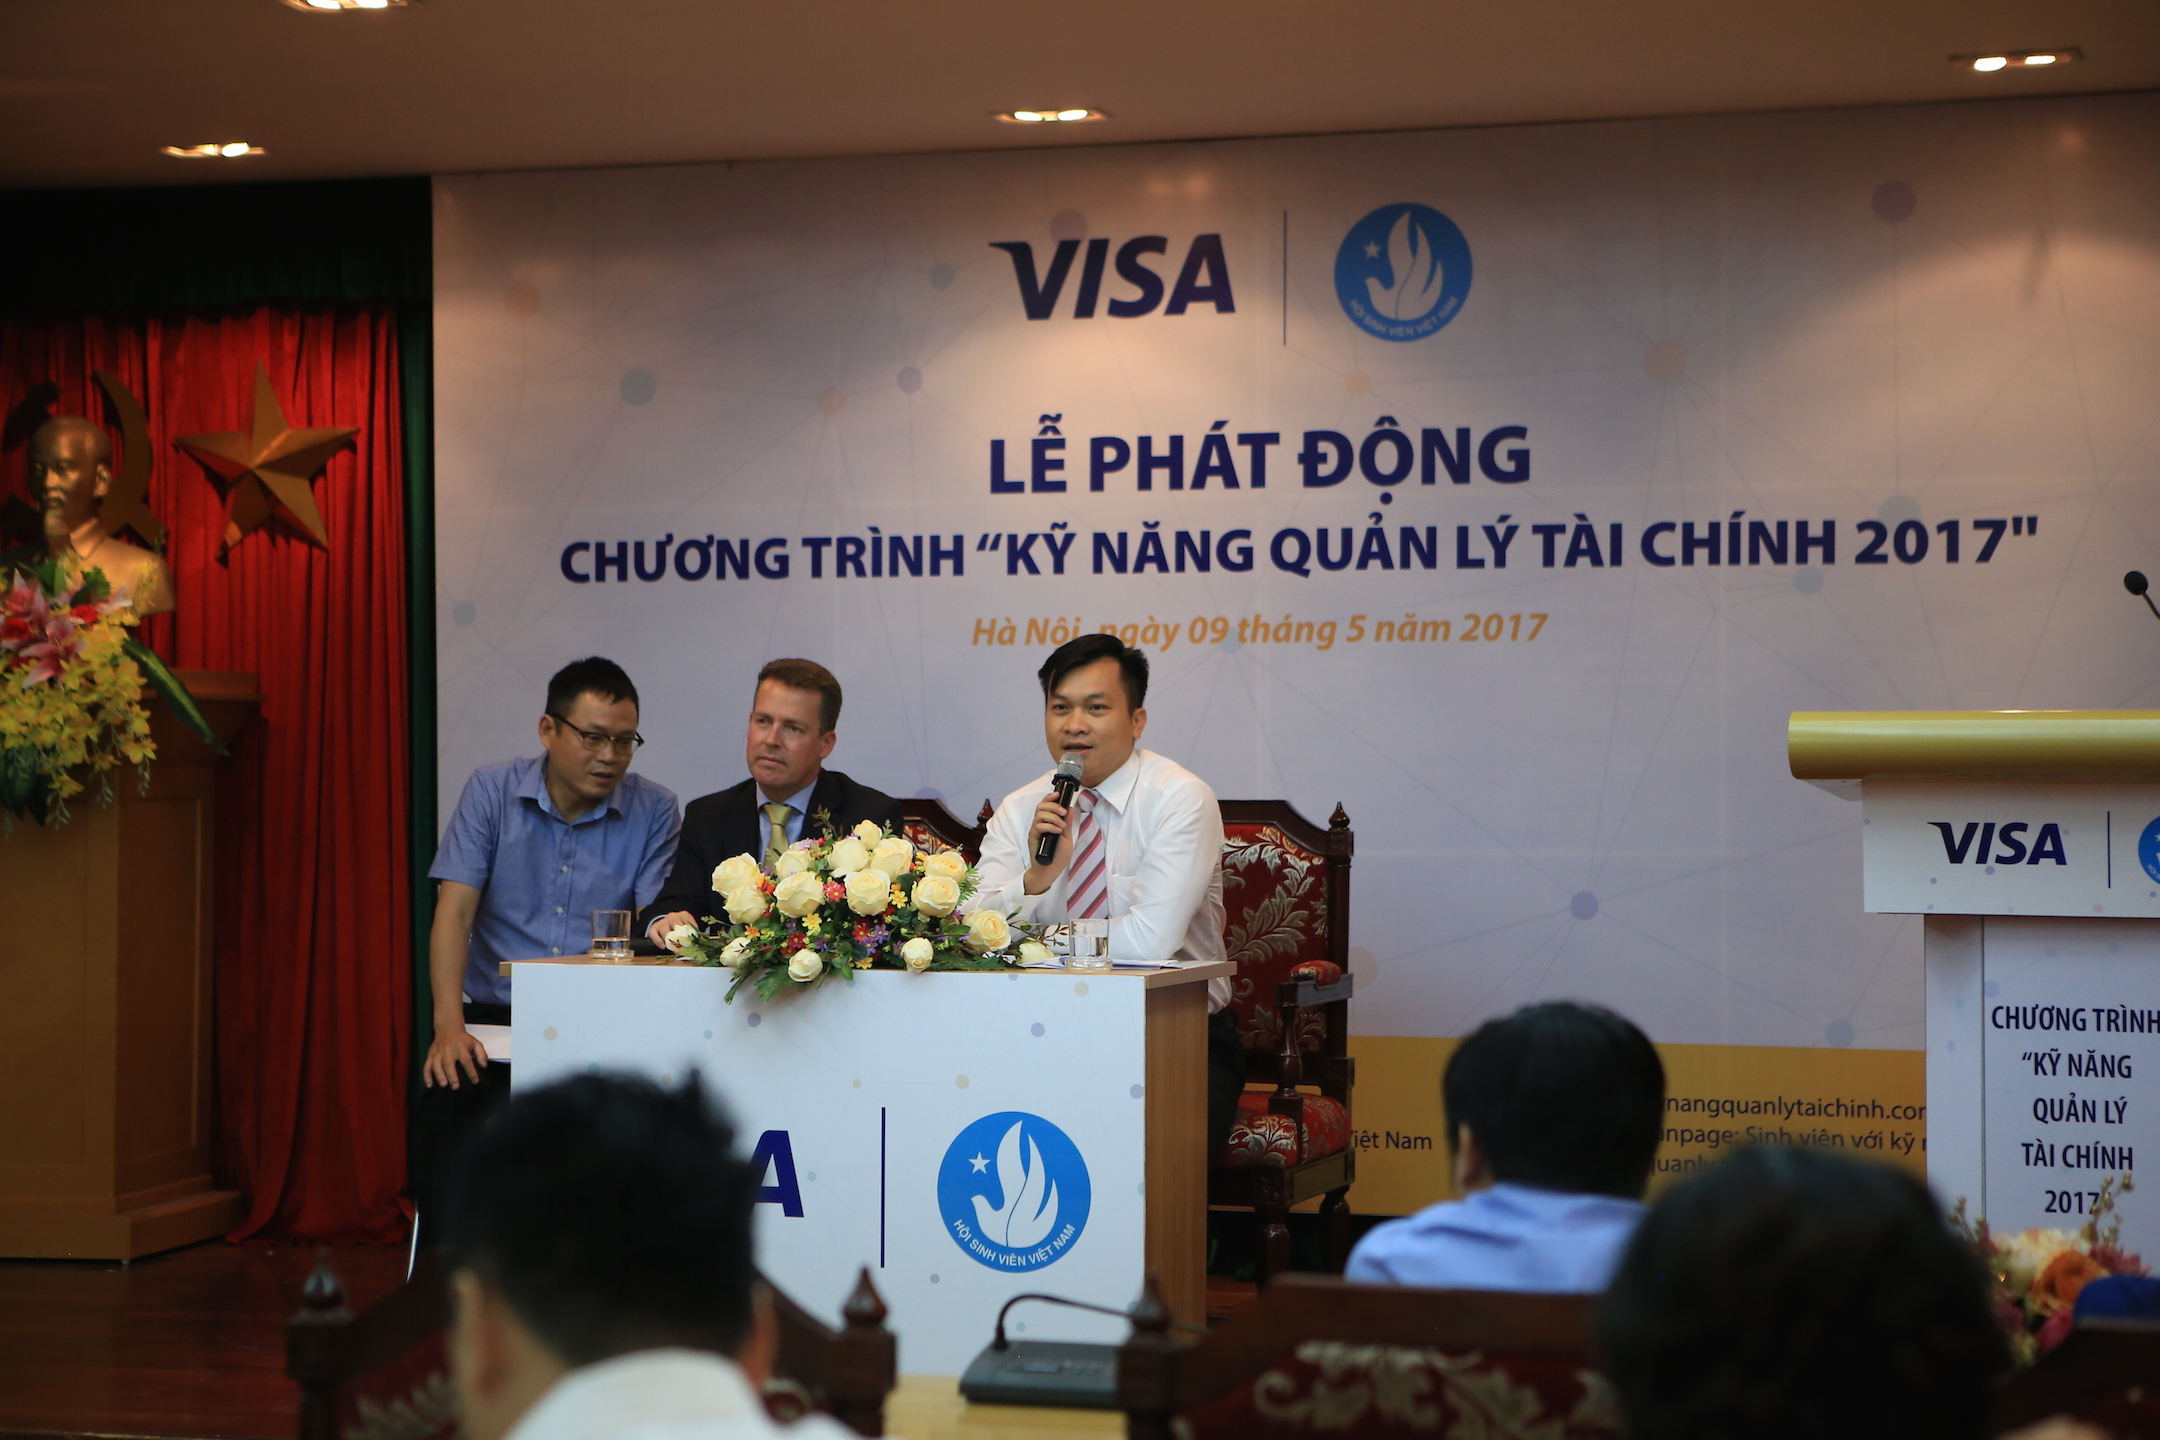 visas financial literacy programme enters sixth instalment